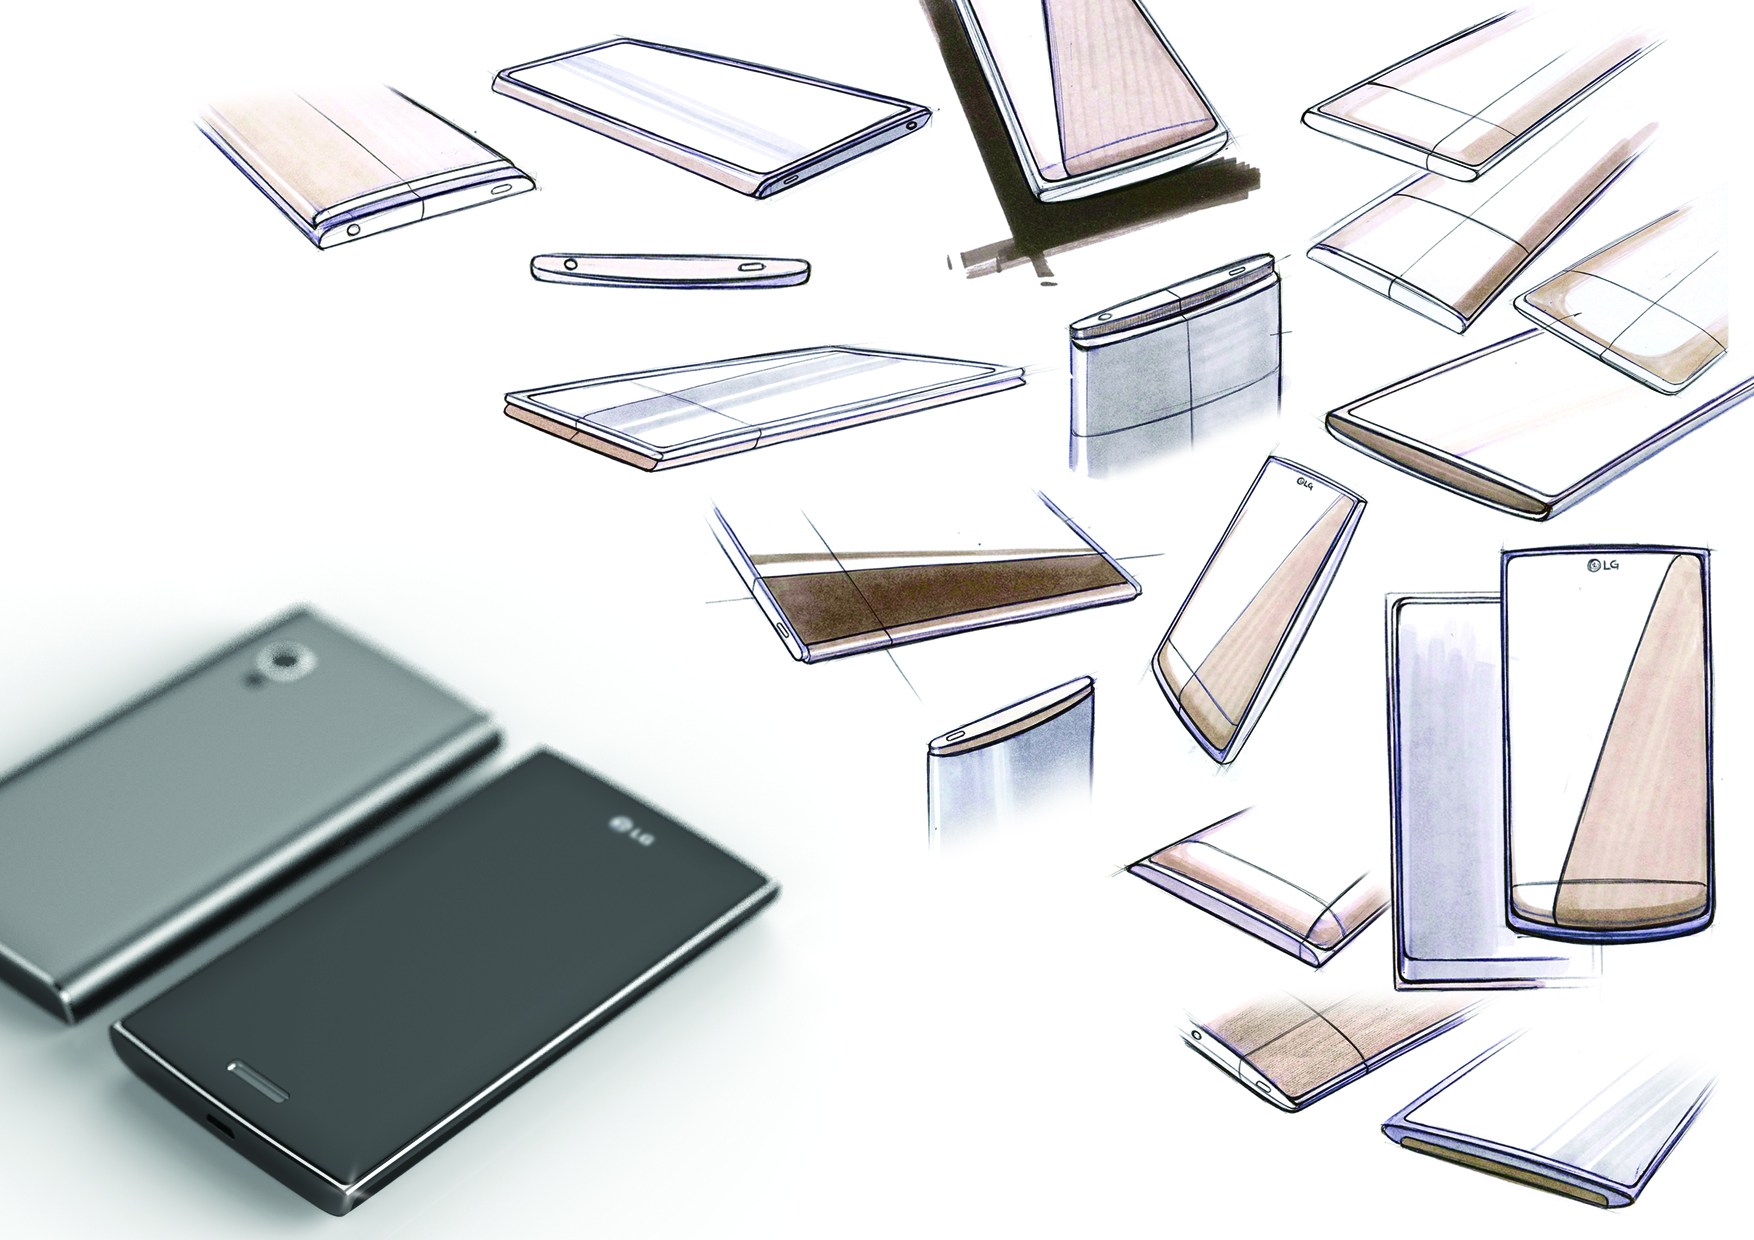 Sketches and Renders for the mid segment premium phones in the LG Lineup